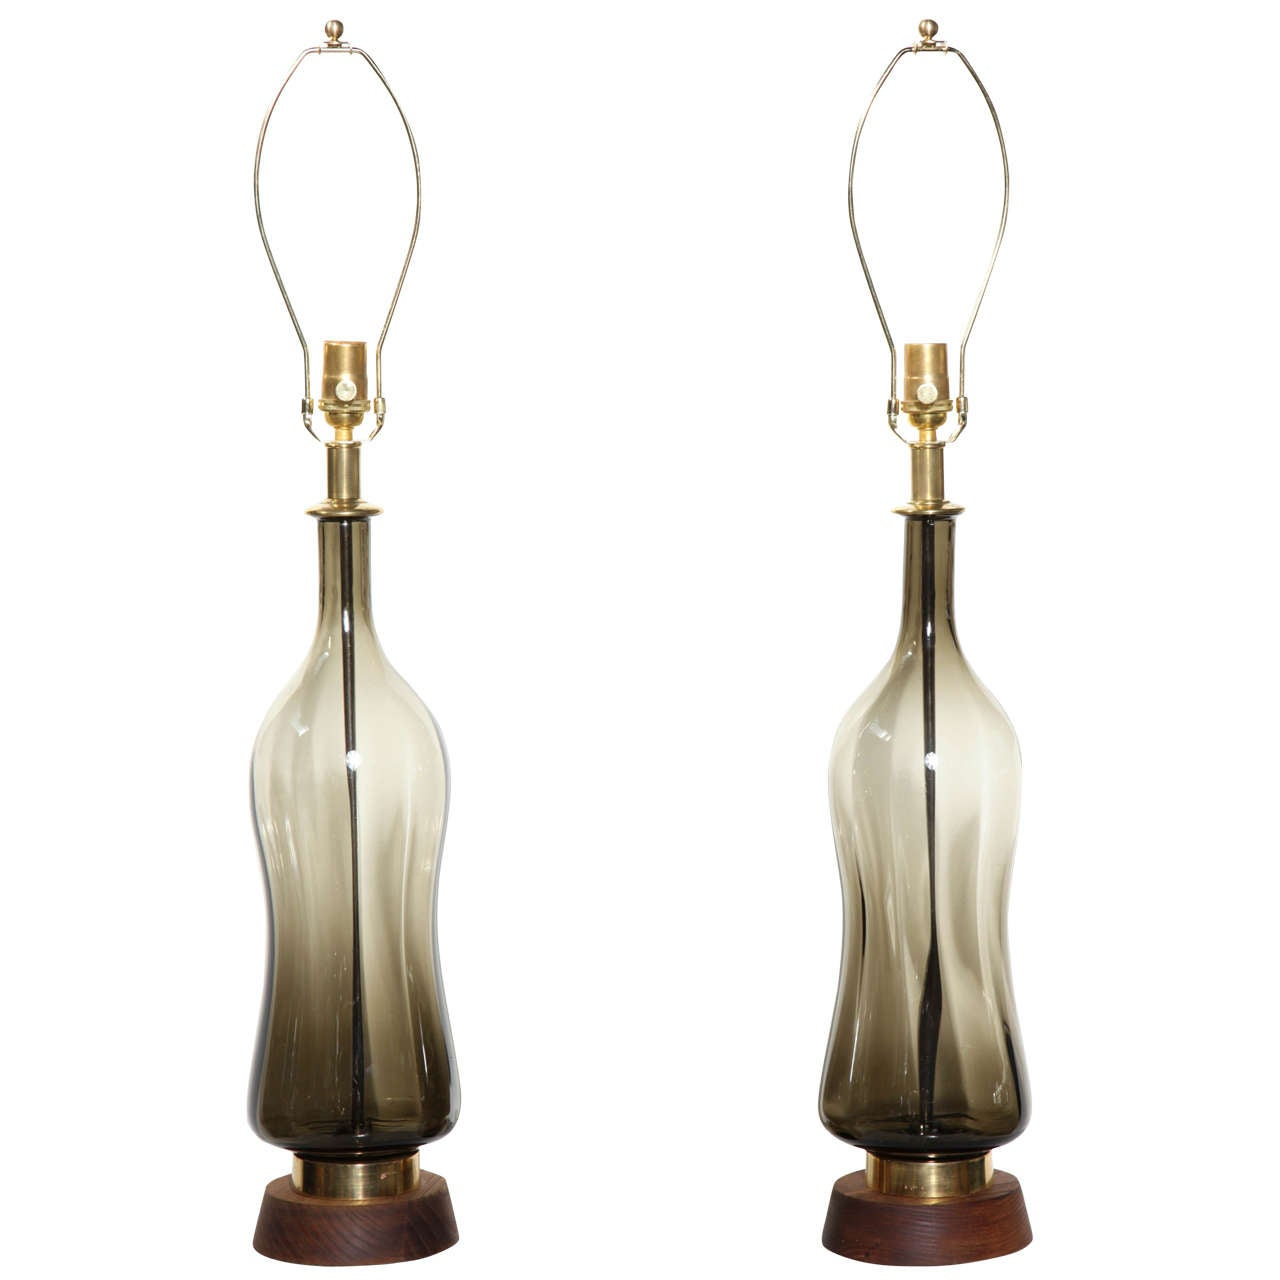 Substantial Pair of Blenko Translucent Earthen Smoked Glass Table Lamps, 1950s 1